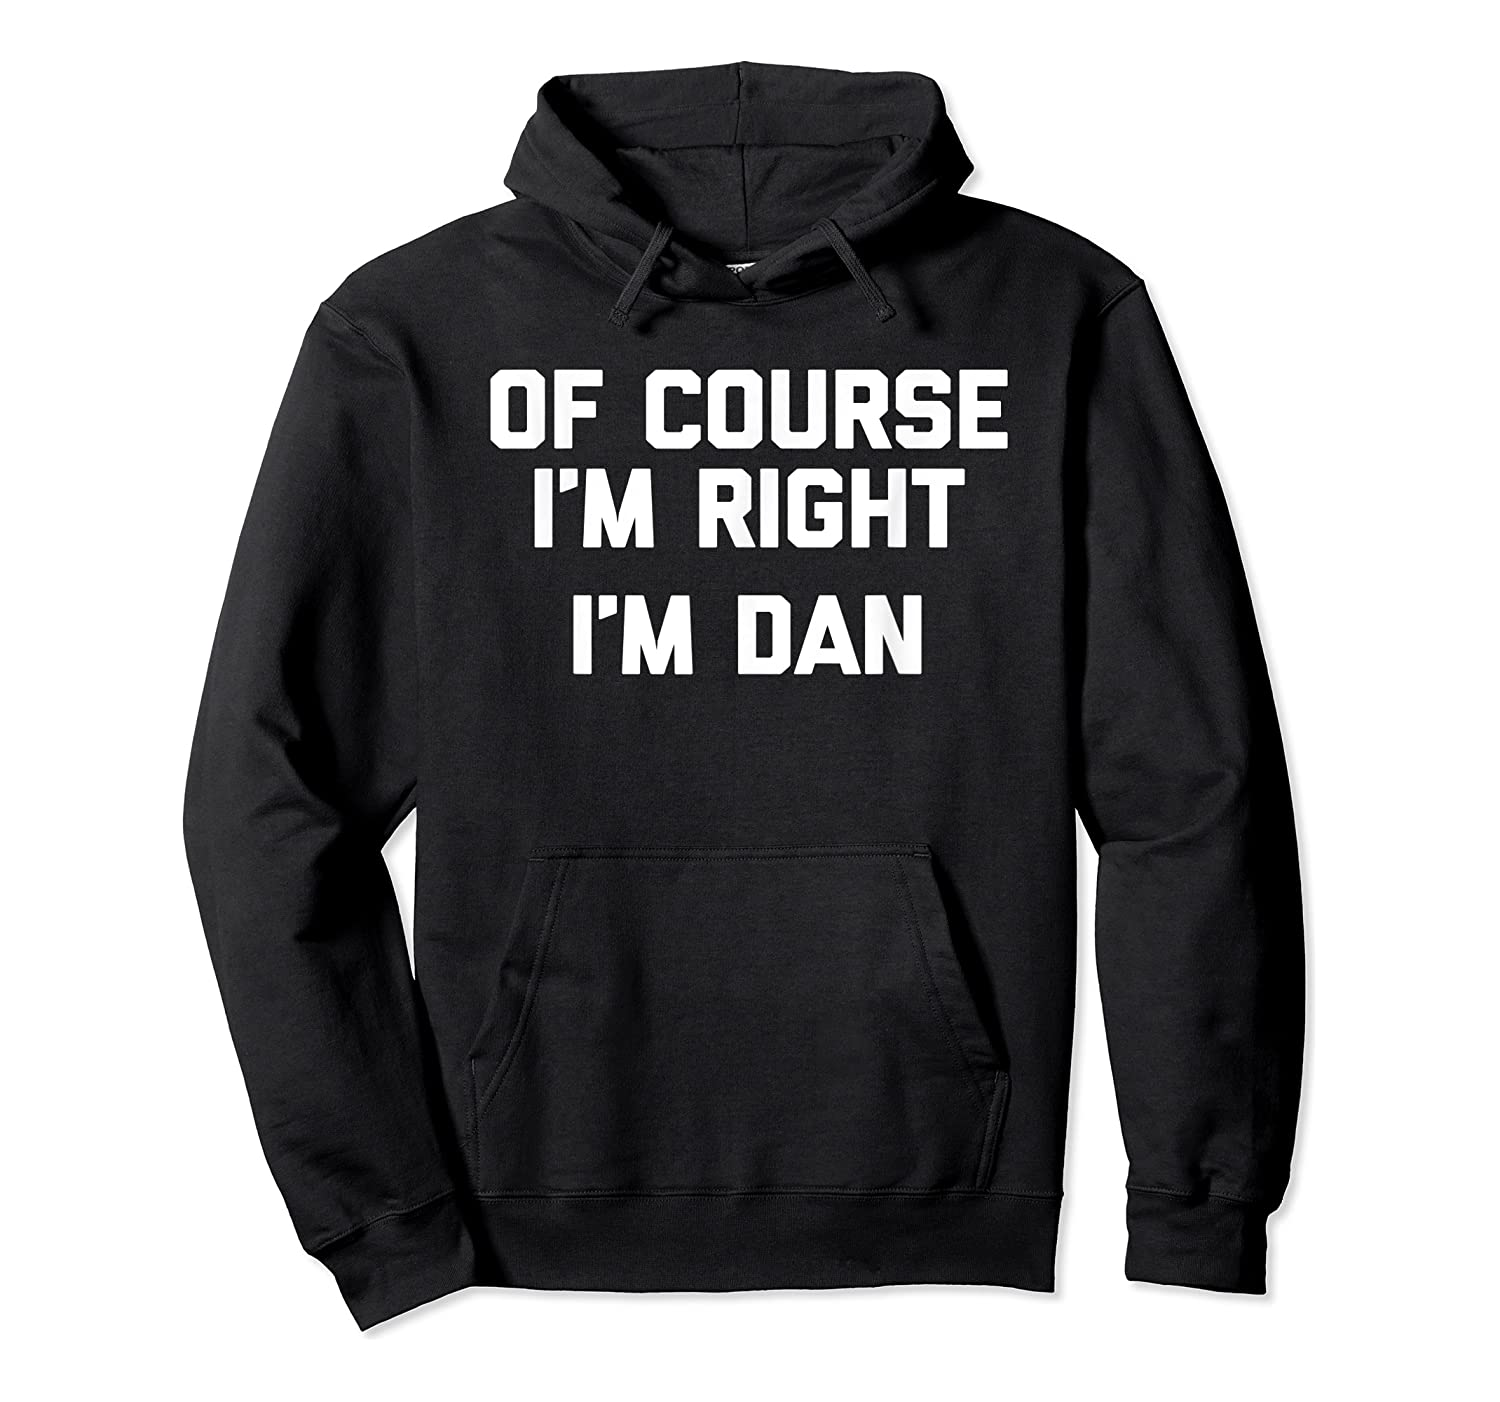 Of Course I'm Right, I'm Dan T-shirt Funny Saying Sarcastic Unisex Pullover Hoodie